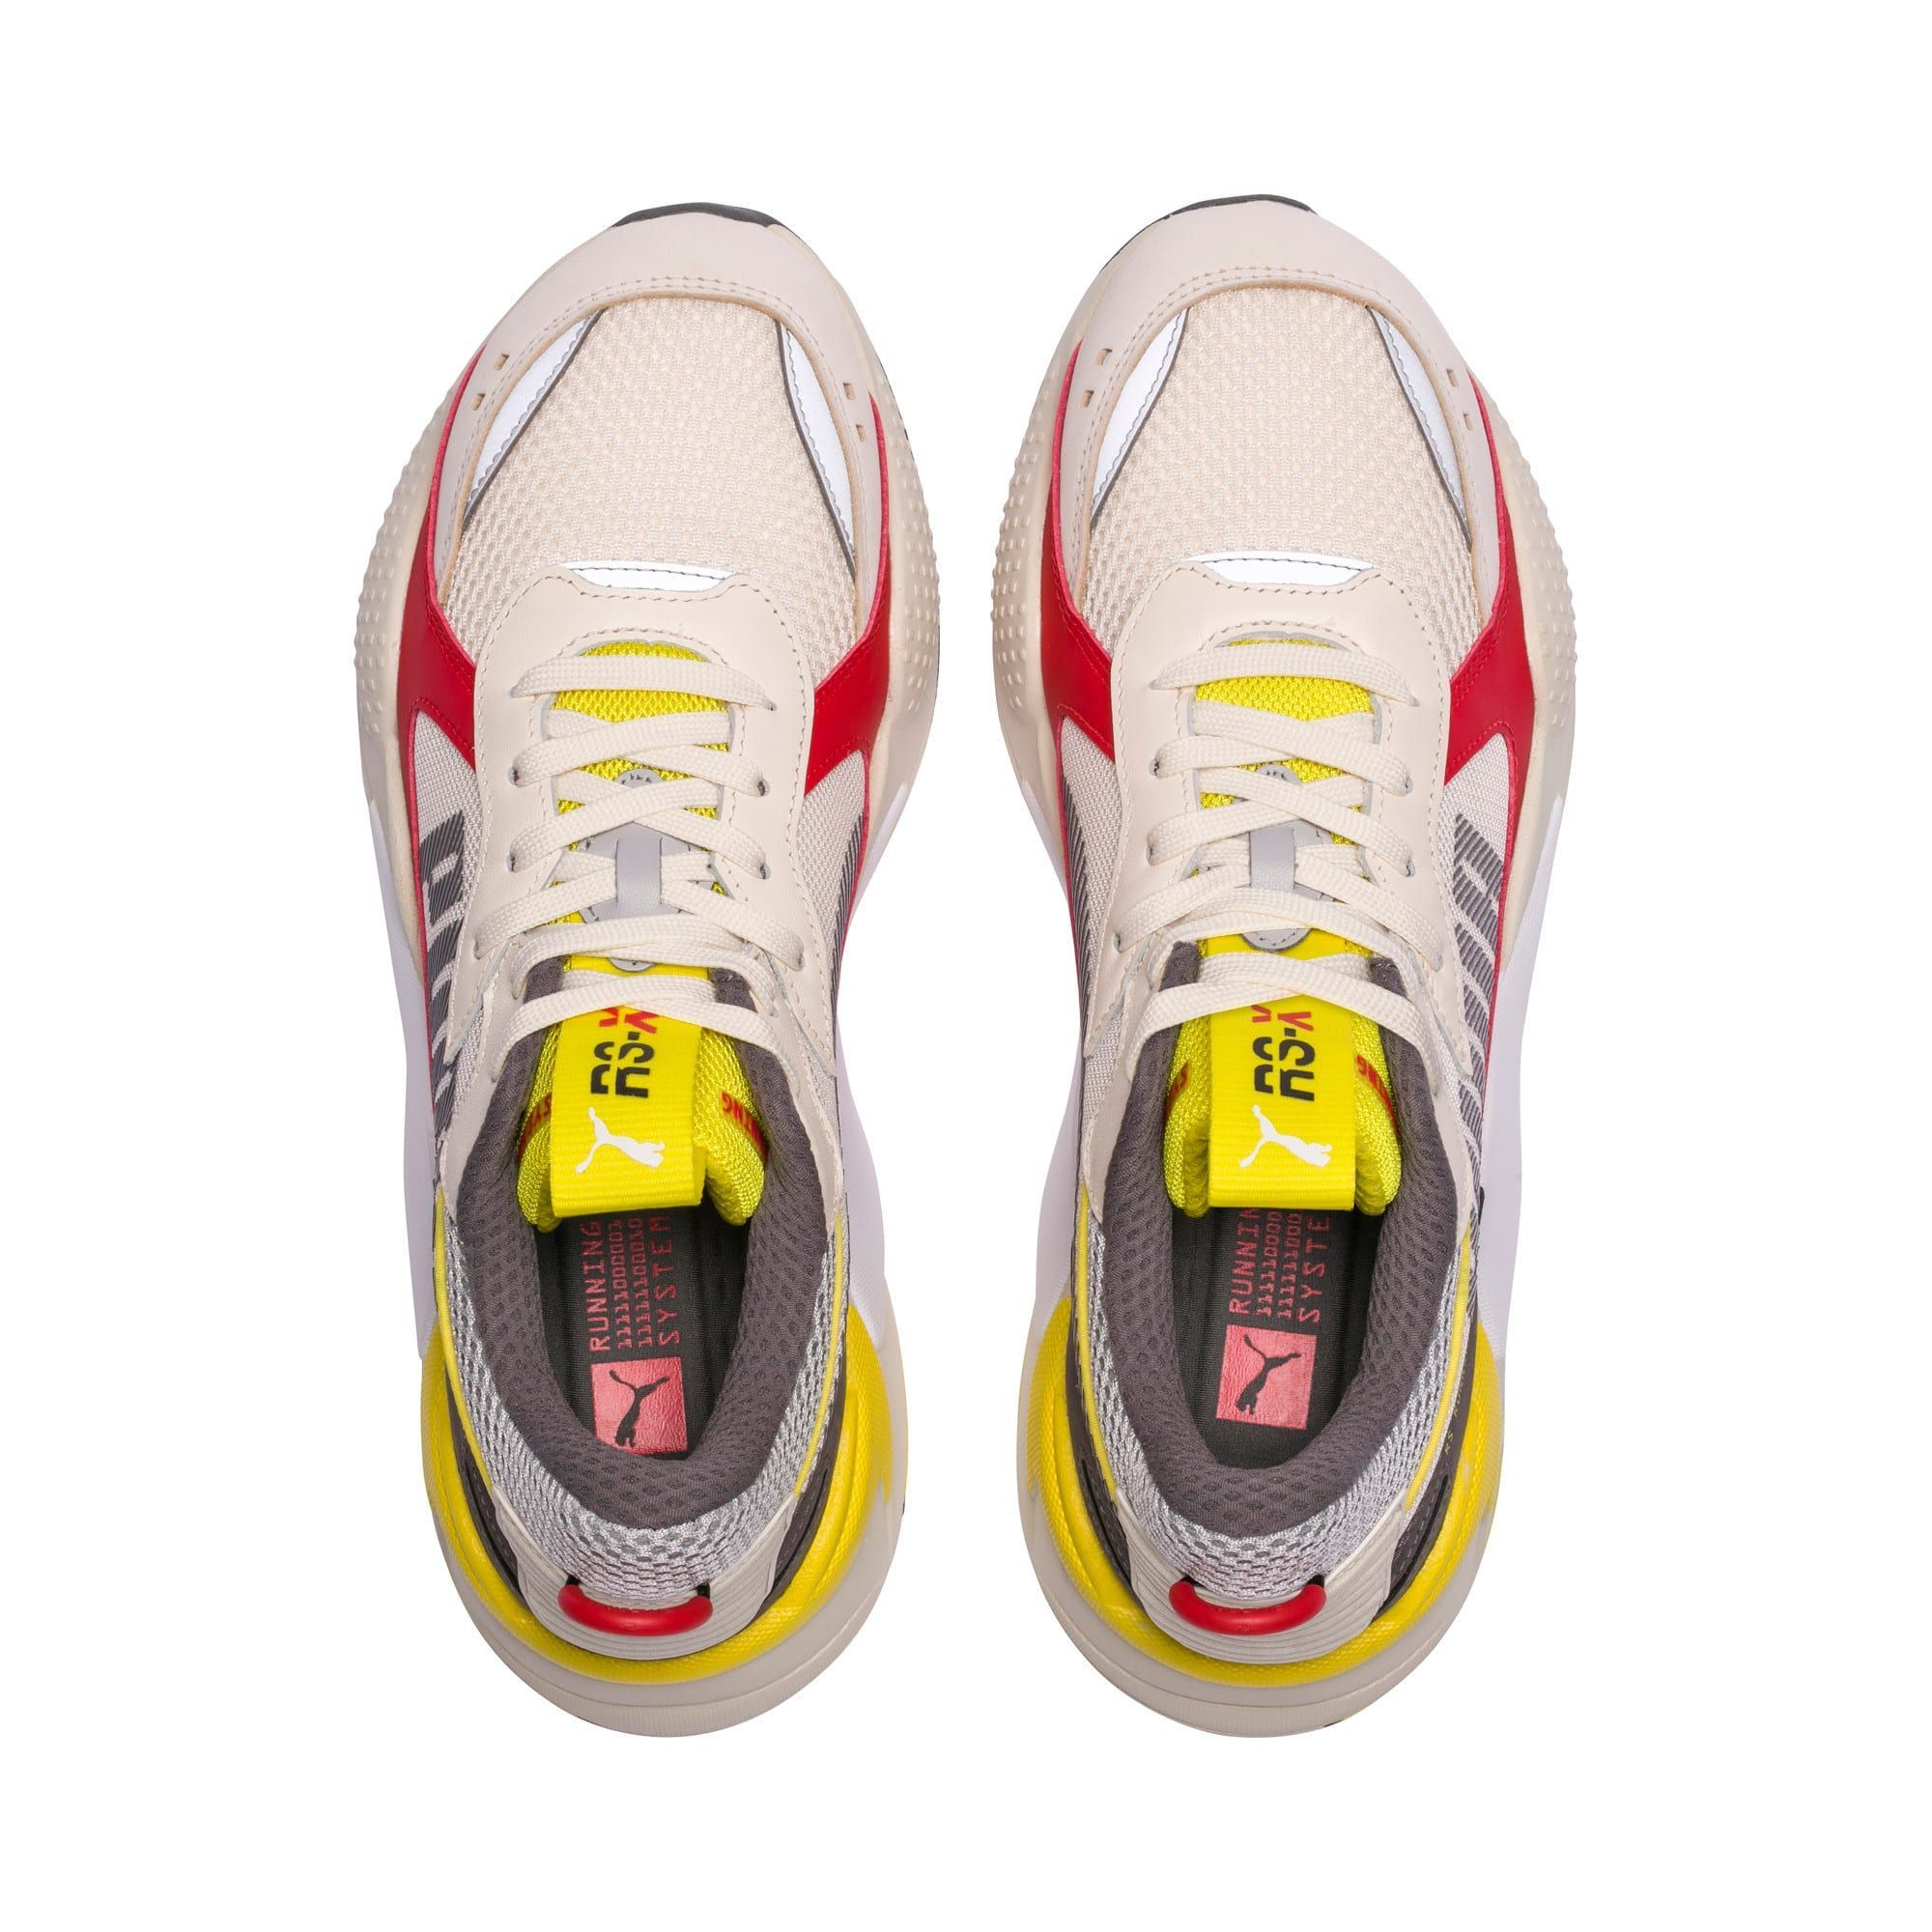 PUMA Rs-X Bold Trainers in Whisper White/High Risk Red size ...